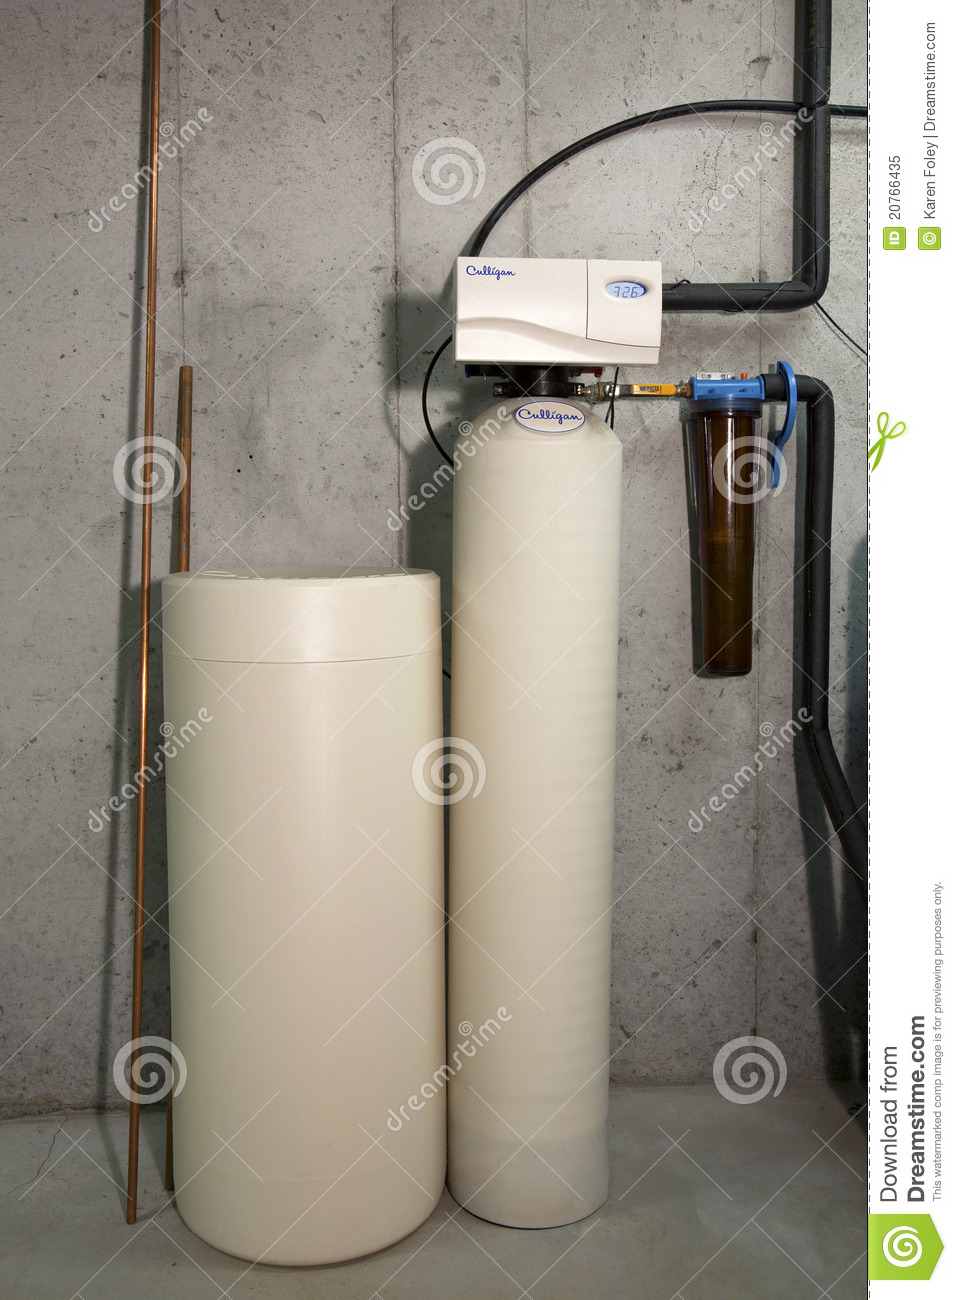 Water Softener Water Softener Copper Piping